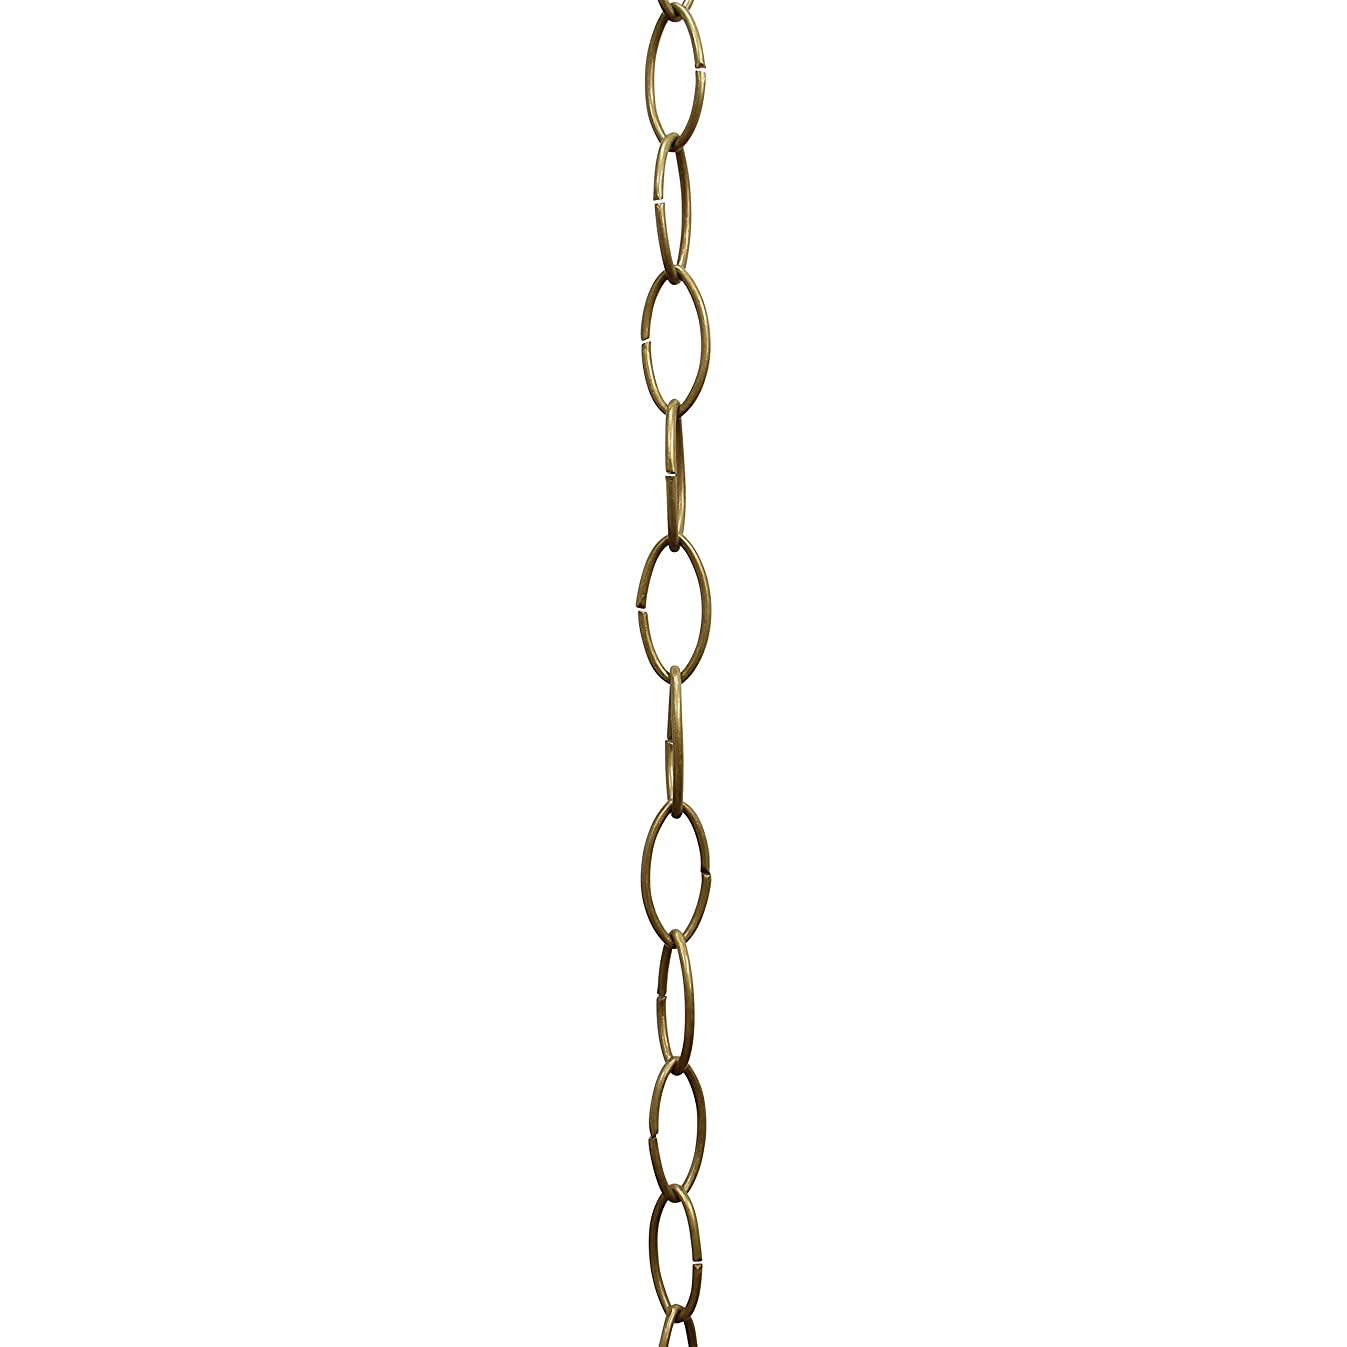 RCH Hardware CH-43-AB Decorative Antique Solid Brass Chain for Hanging, Lighting - Large Oval Wire Unwelded Links ( 1 Foot)